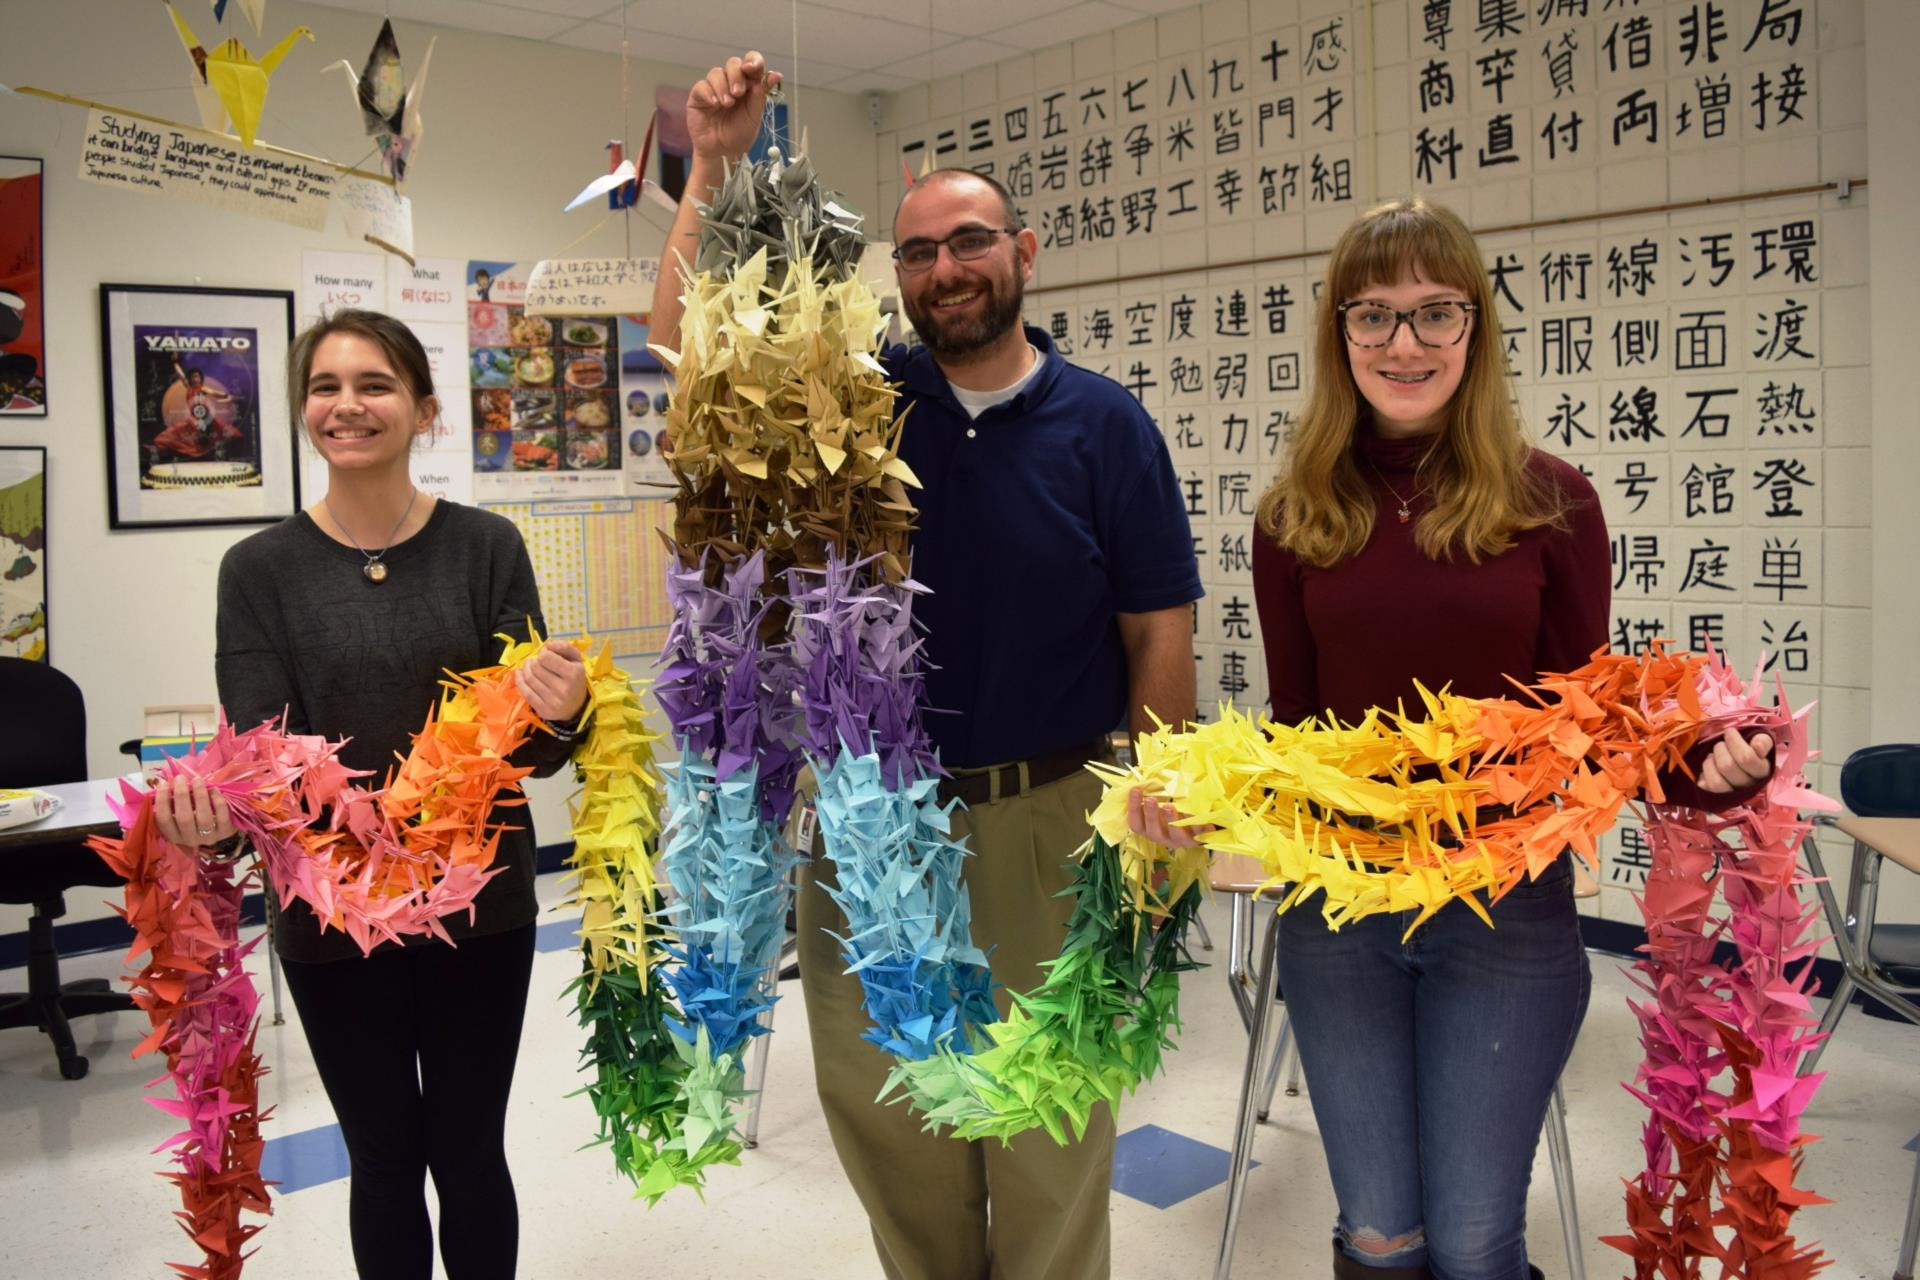 teacher and students holding paper cranes